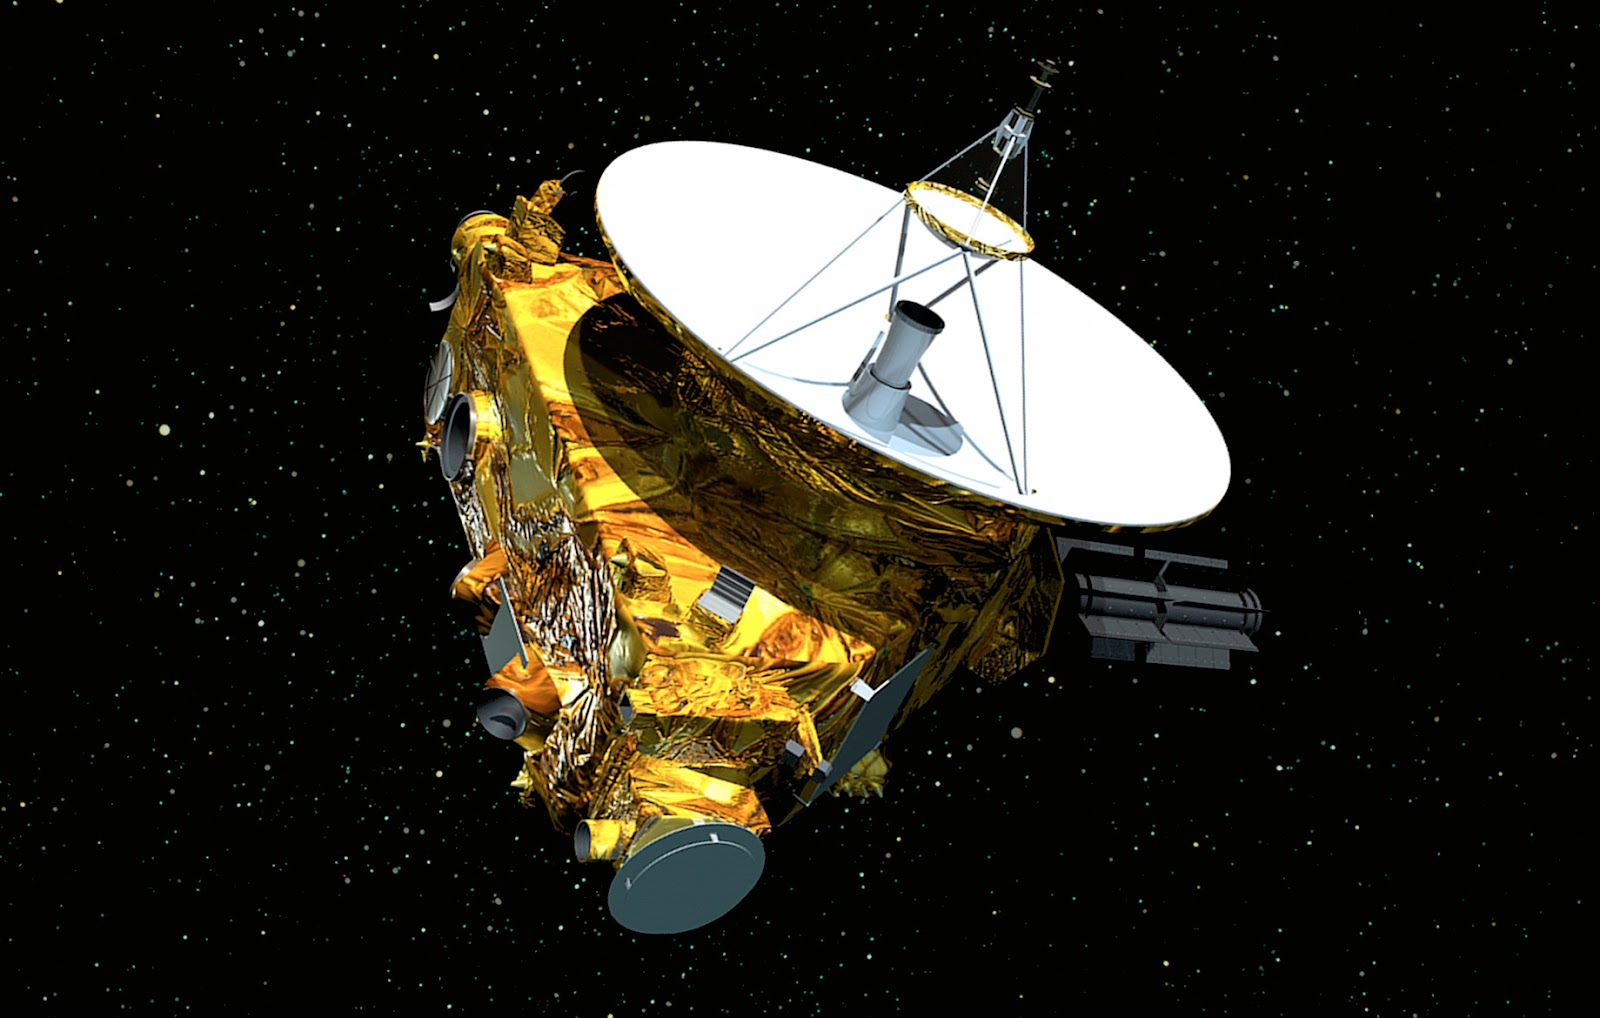 FIGURE-2-pluto-new-horizons-art.jpg